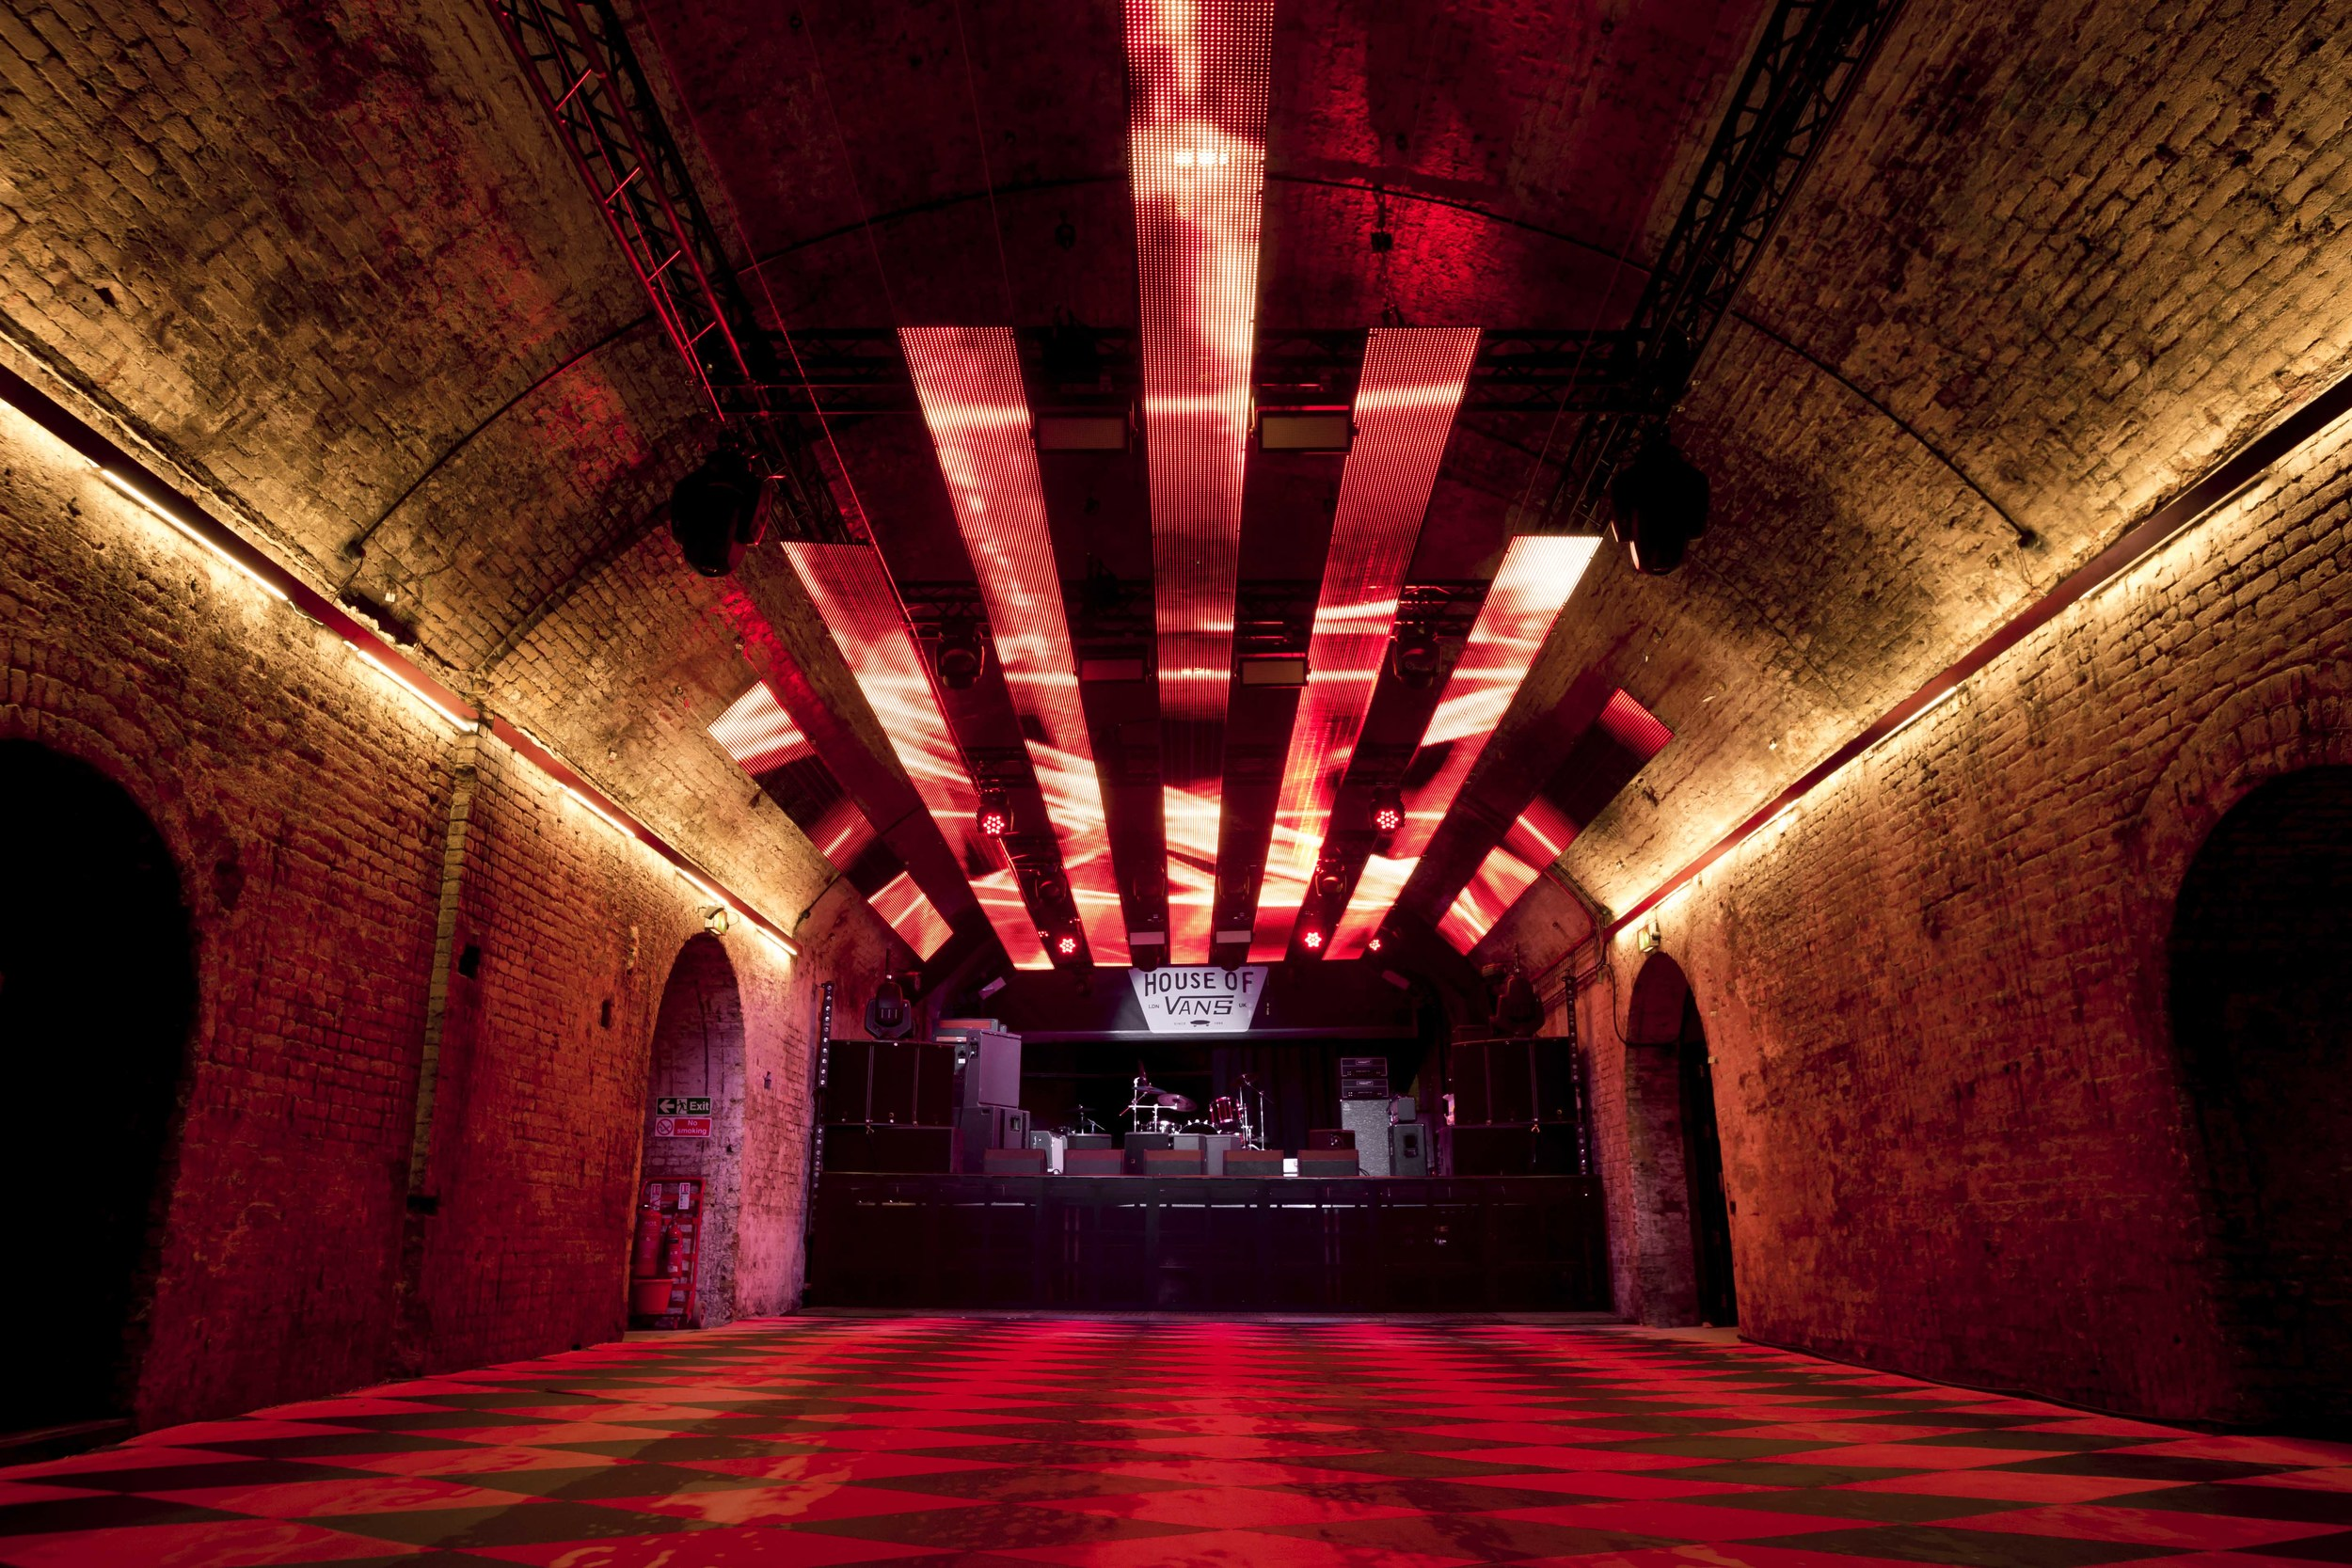 Tunnel 3 - 800 Capacity Music Venue